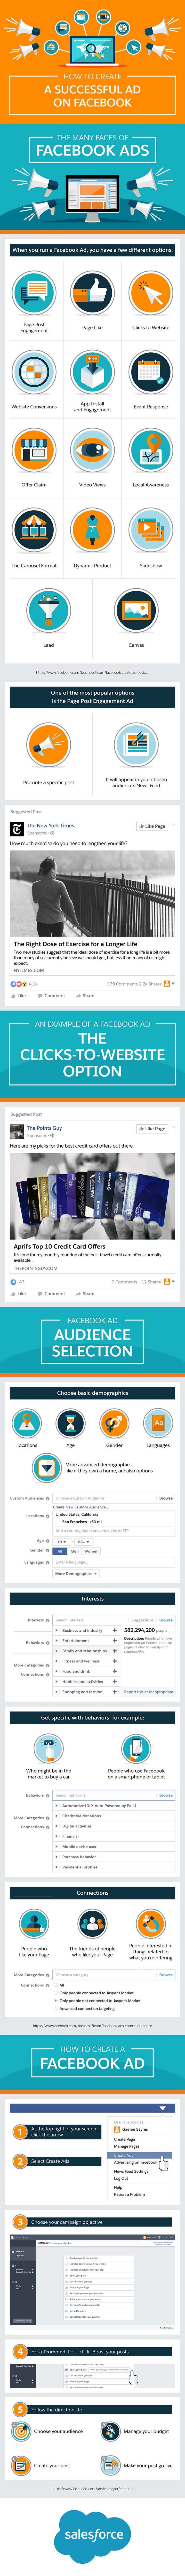 How to Create a Successful Ad on Facebook #Infographic